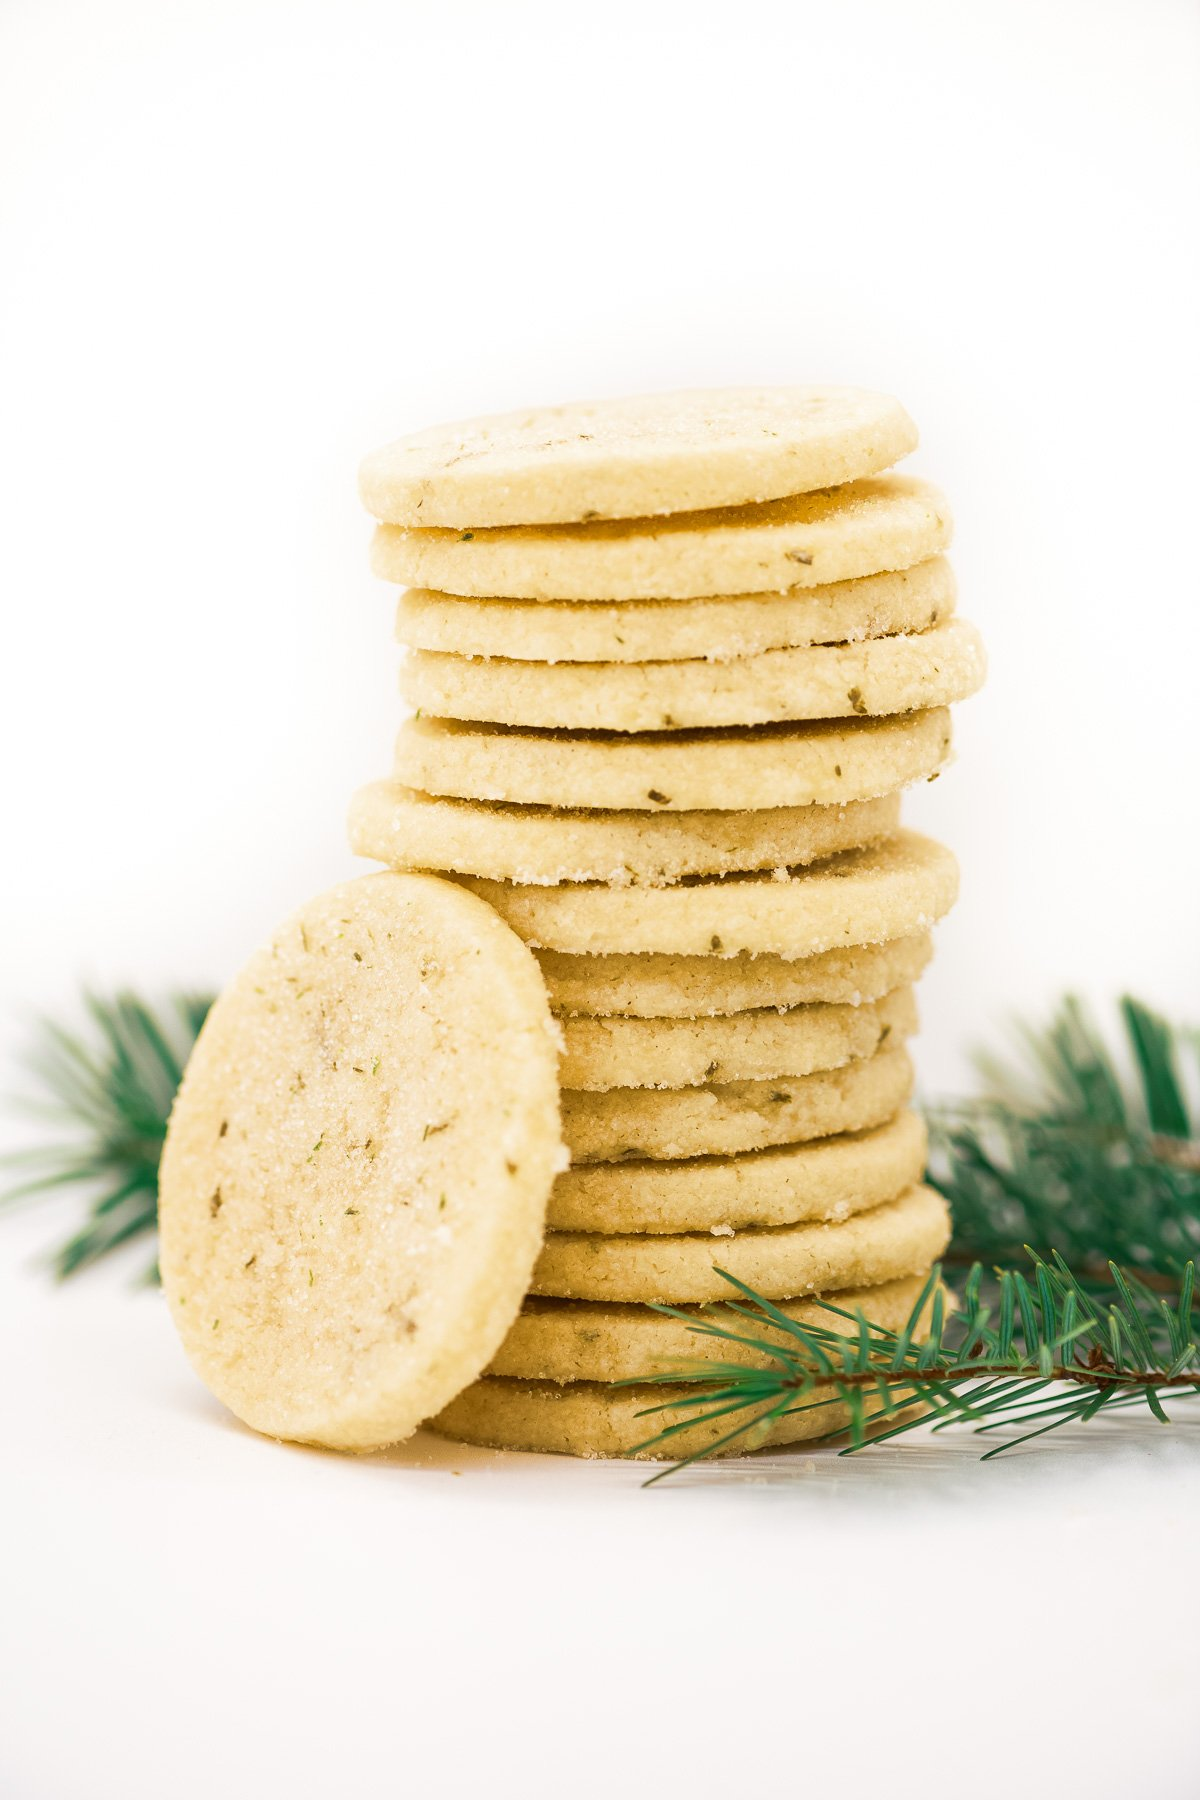 A stack of shortbread cookies made with fir needles